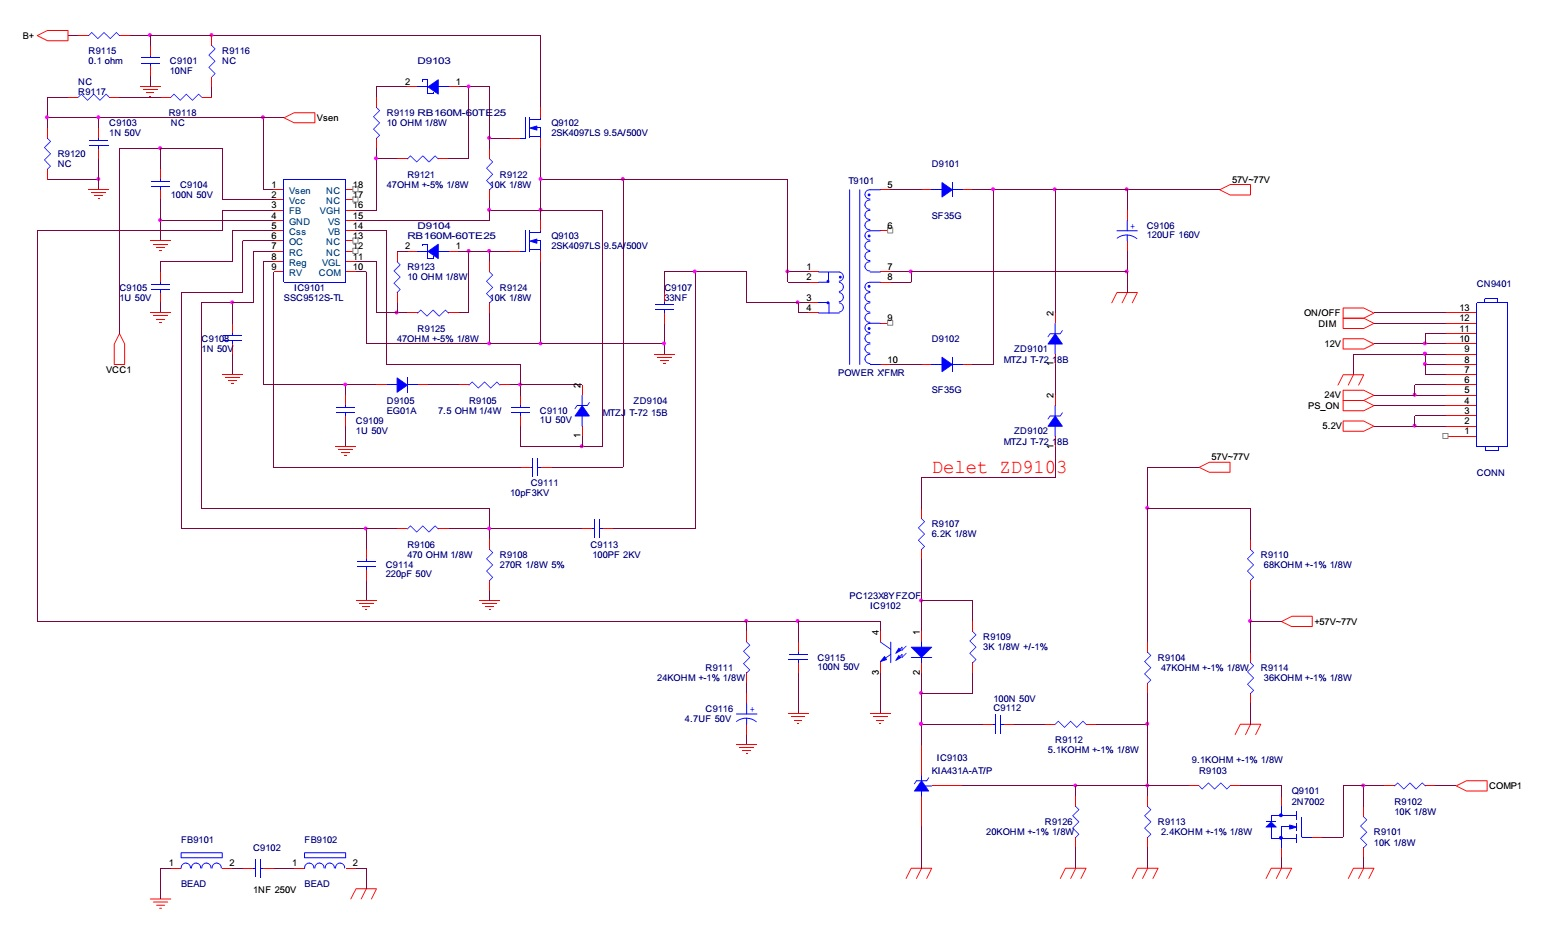 click on diagram to zoom wiring diagram name sony playstation 3 schematic diagram click on schematic [ 1543 x 935 Pixel ]